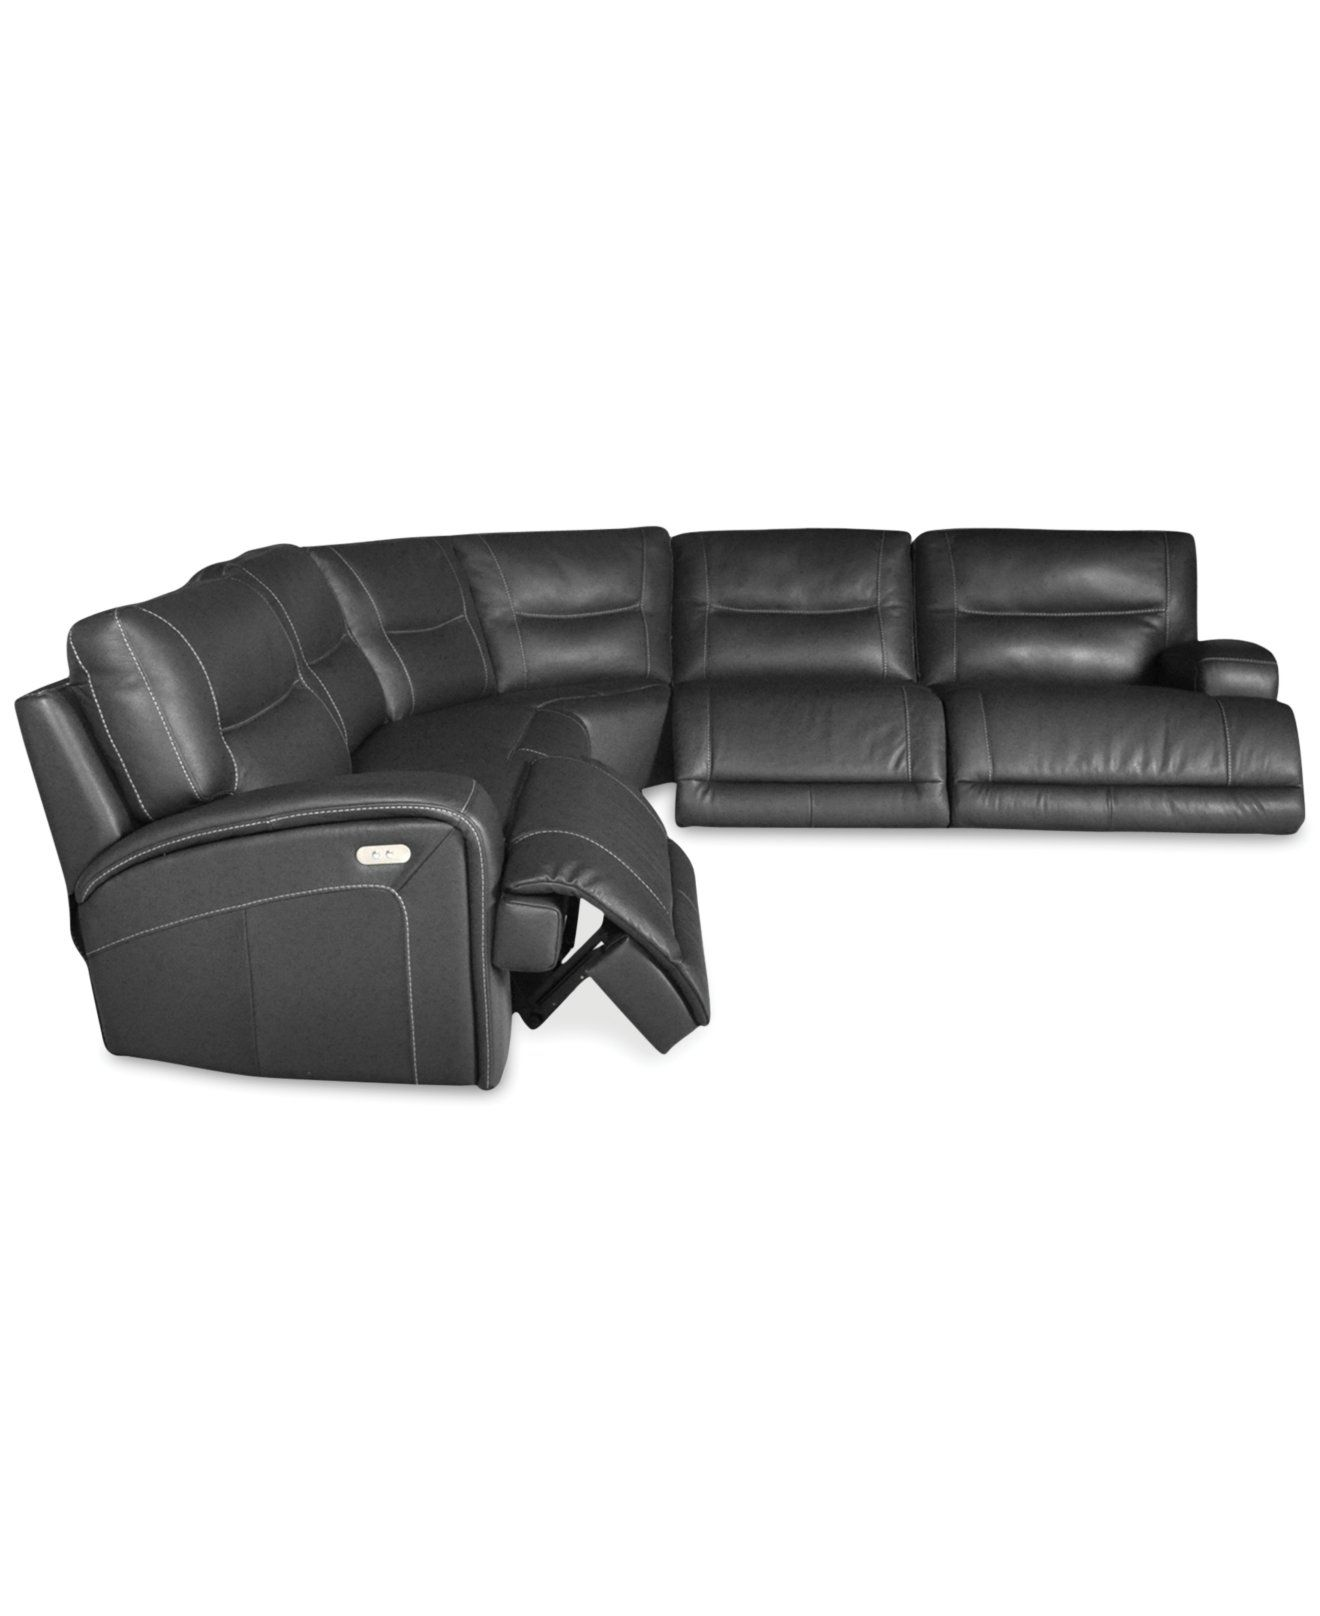 Caruso Leather 6 Piece Power Motion Chaise Sectional Sofa | Den